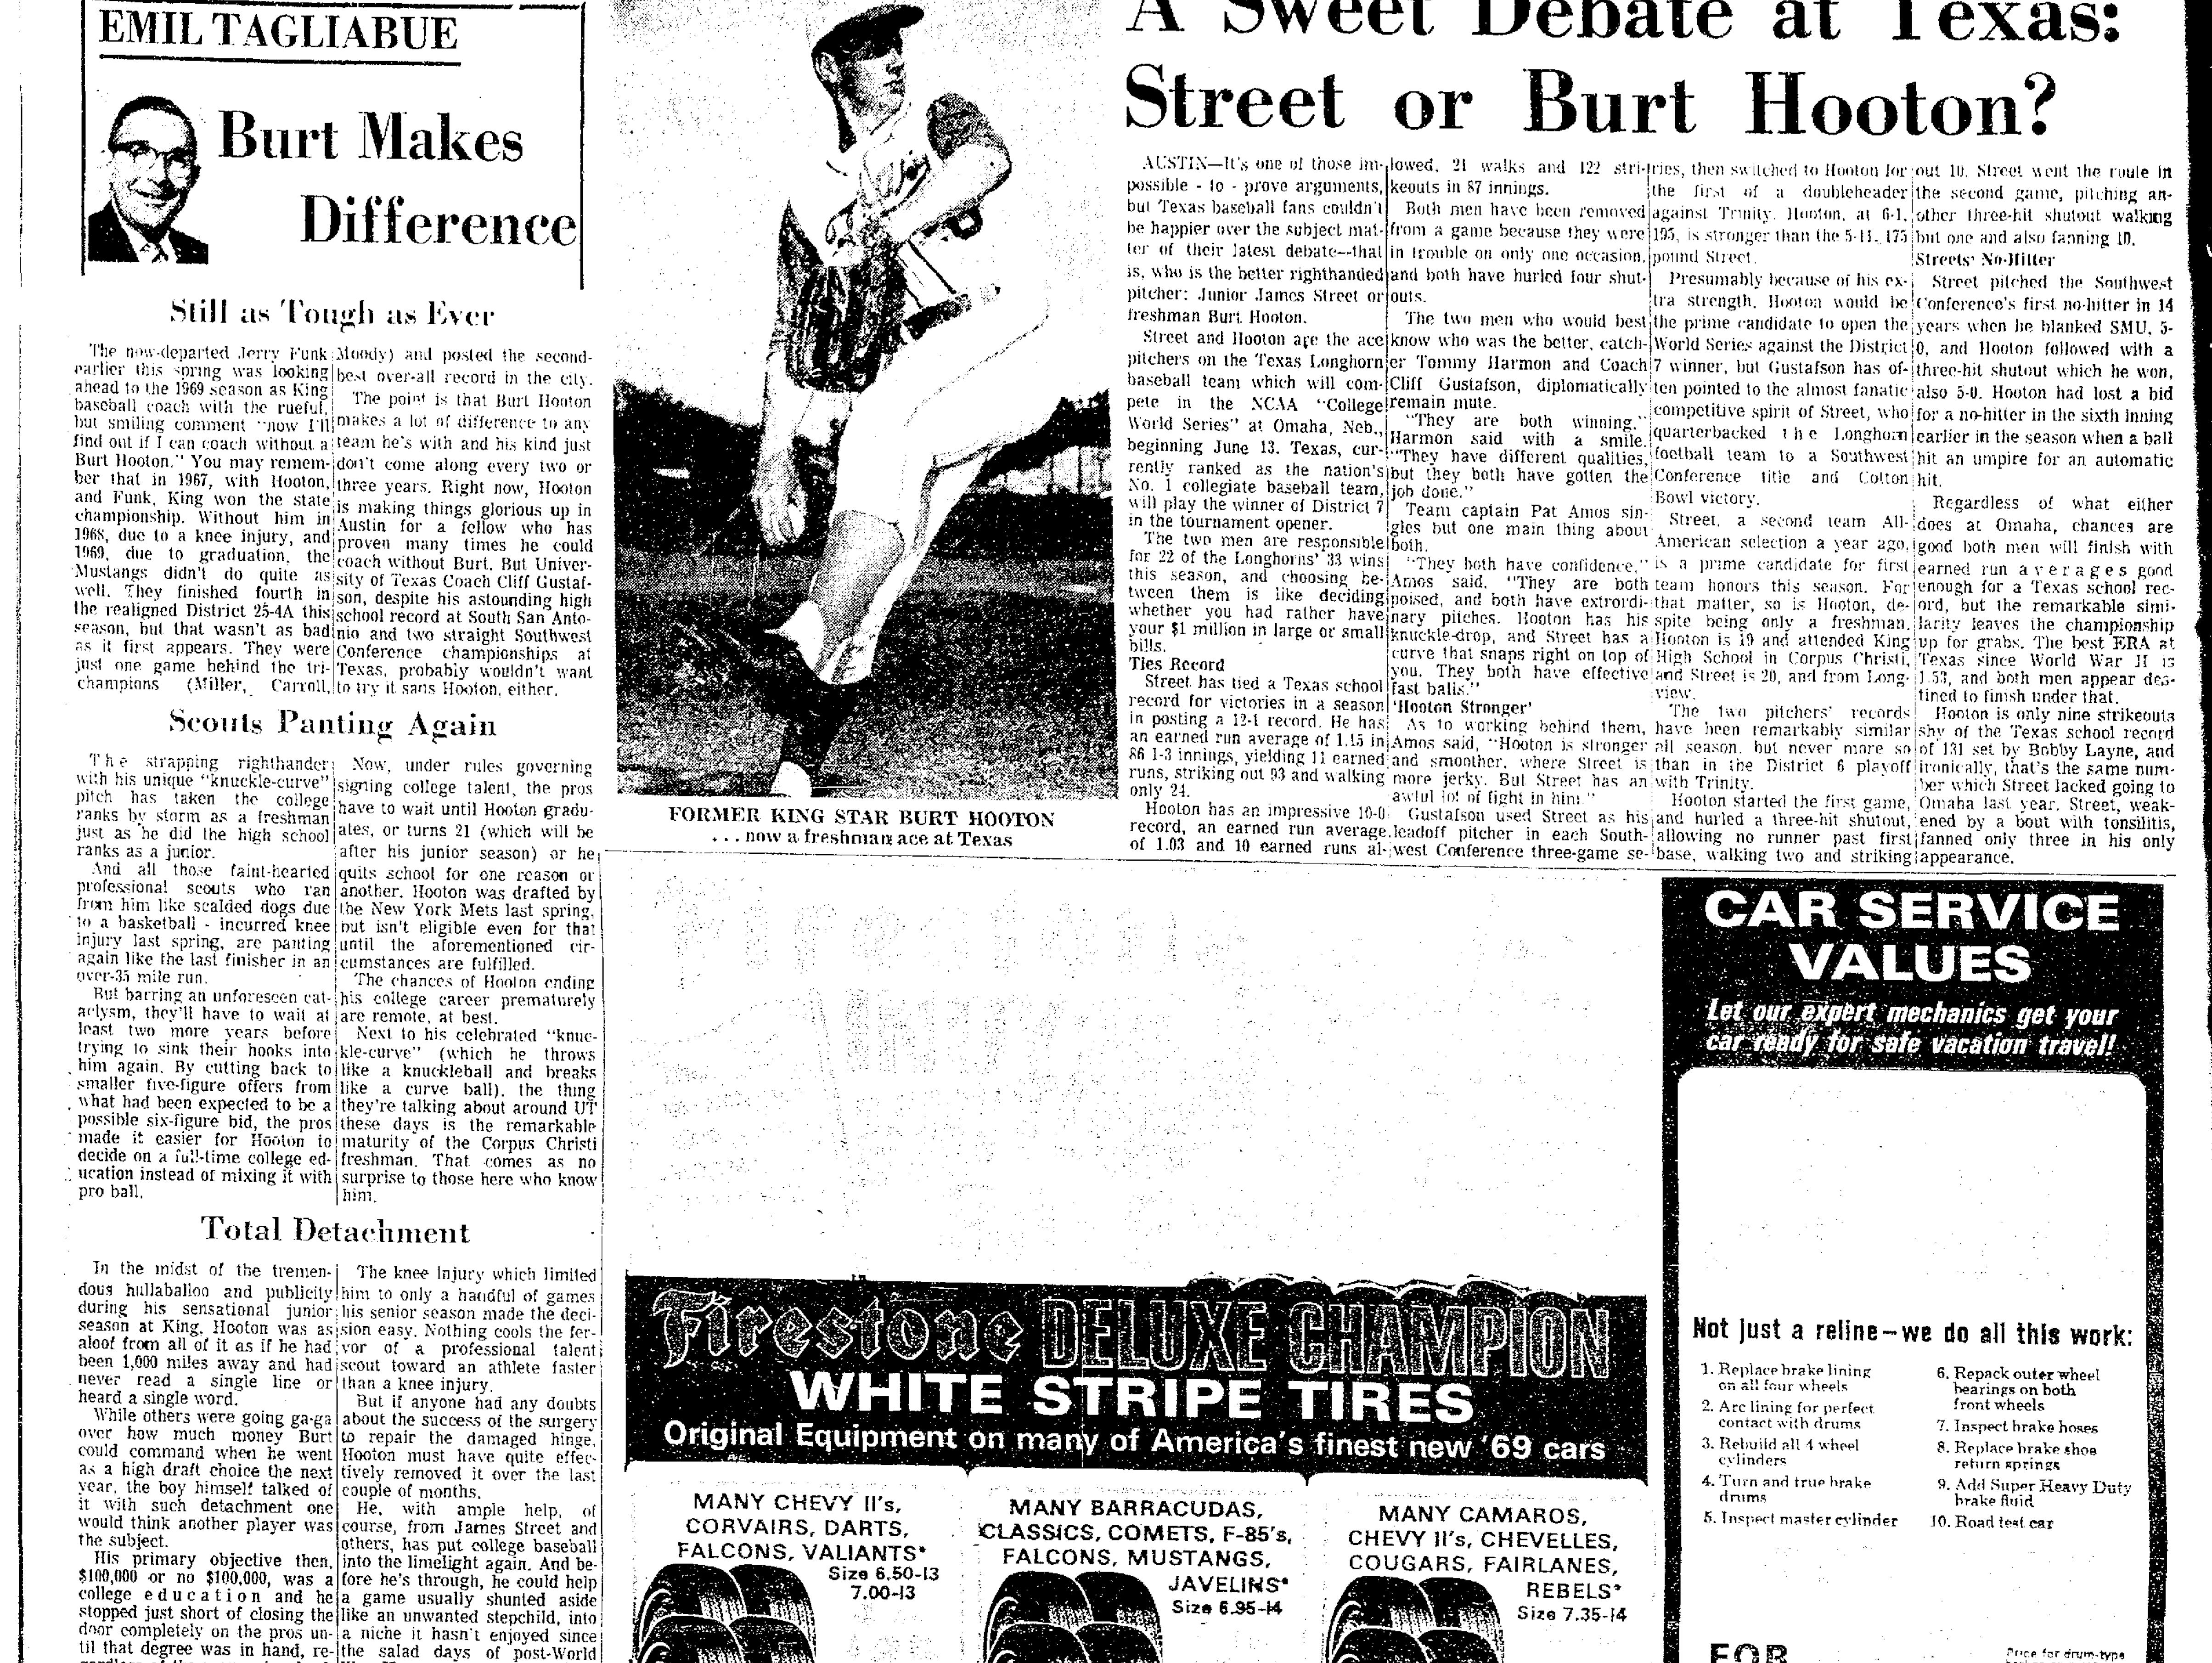 Article on Burt Hooton from June 1, 1969 Caller-Times.